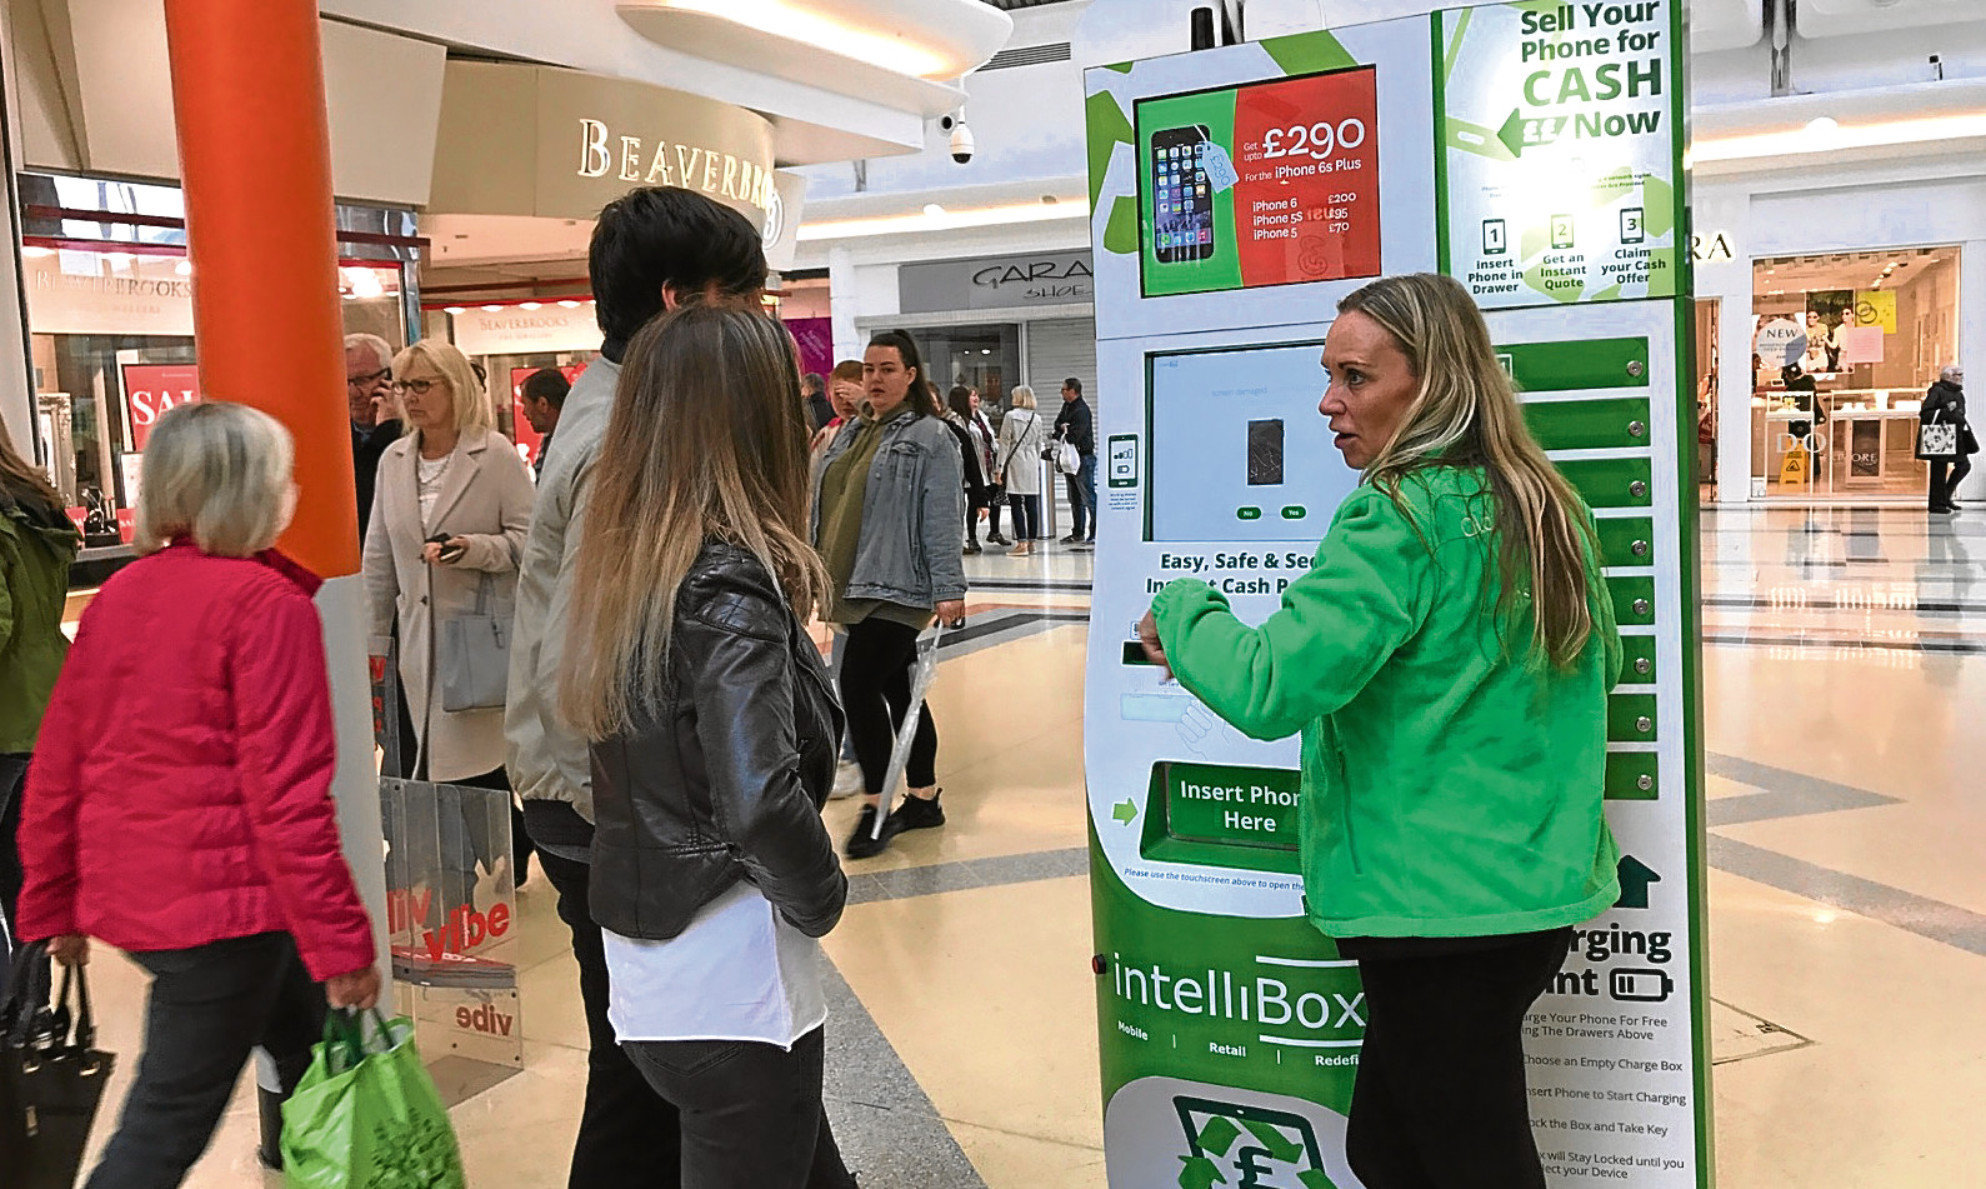 The IntelliBox system is demonstrated to potential customers